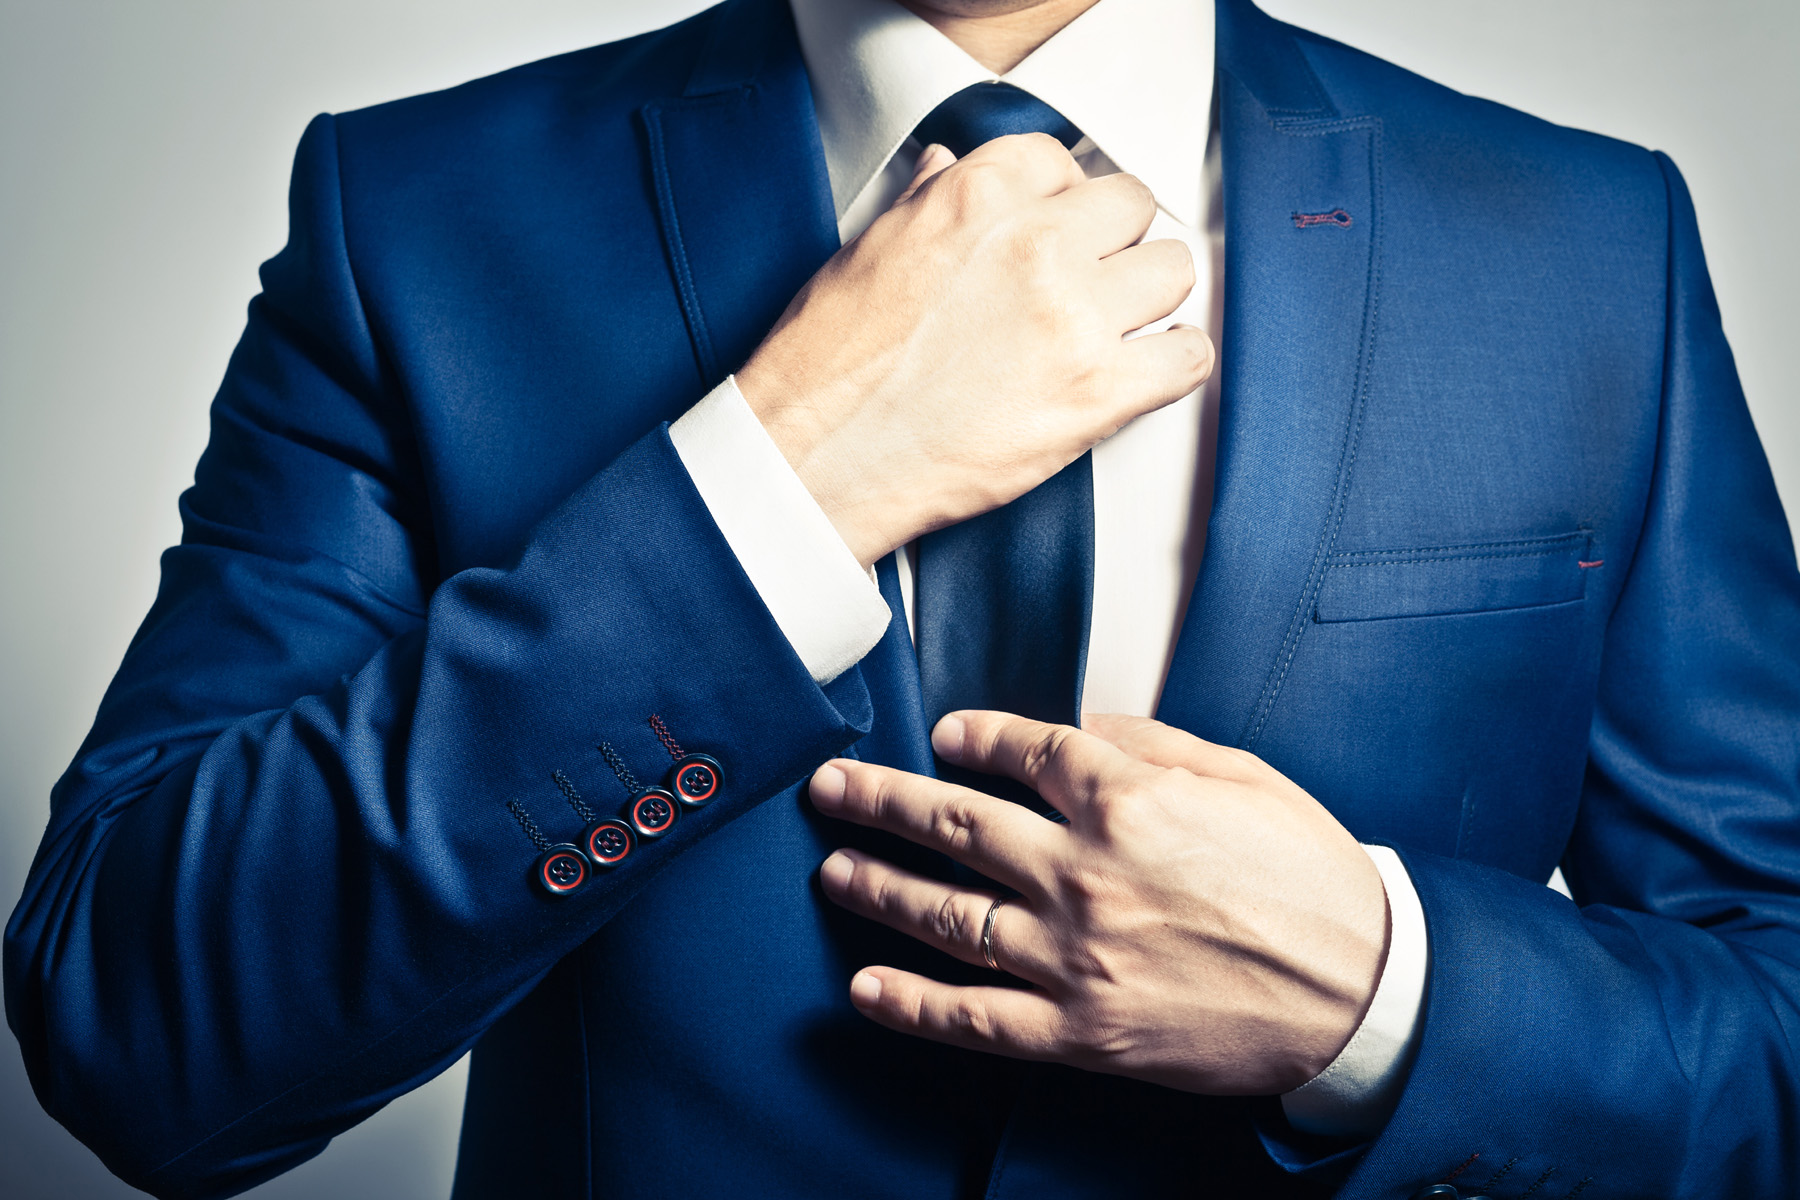 Men who dressed in a royal blue suit local 51704